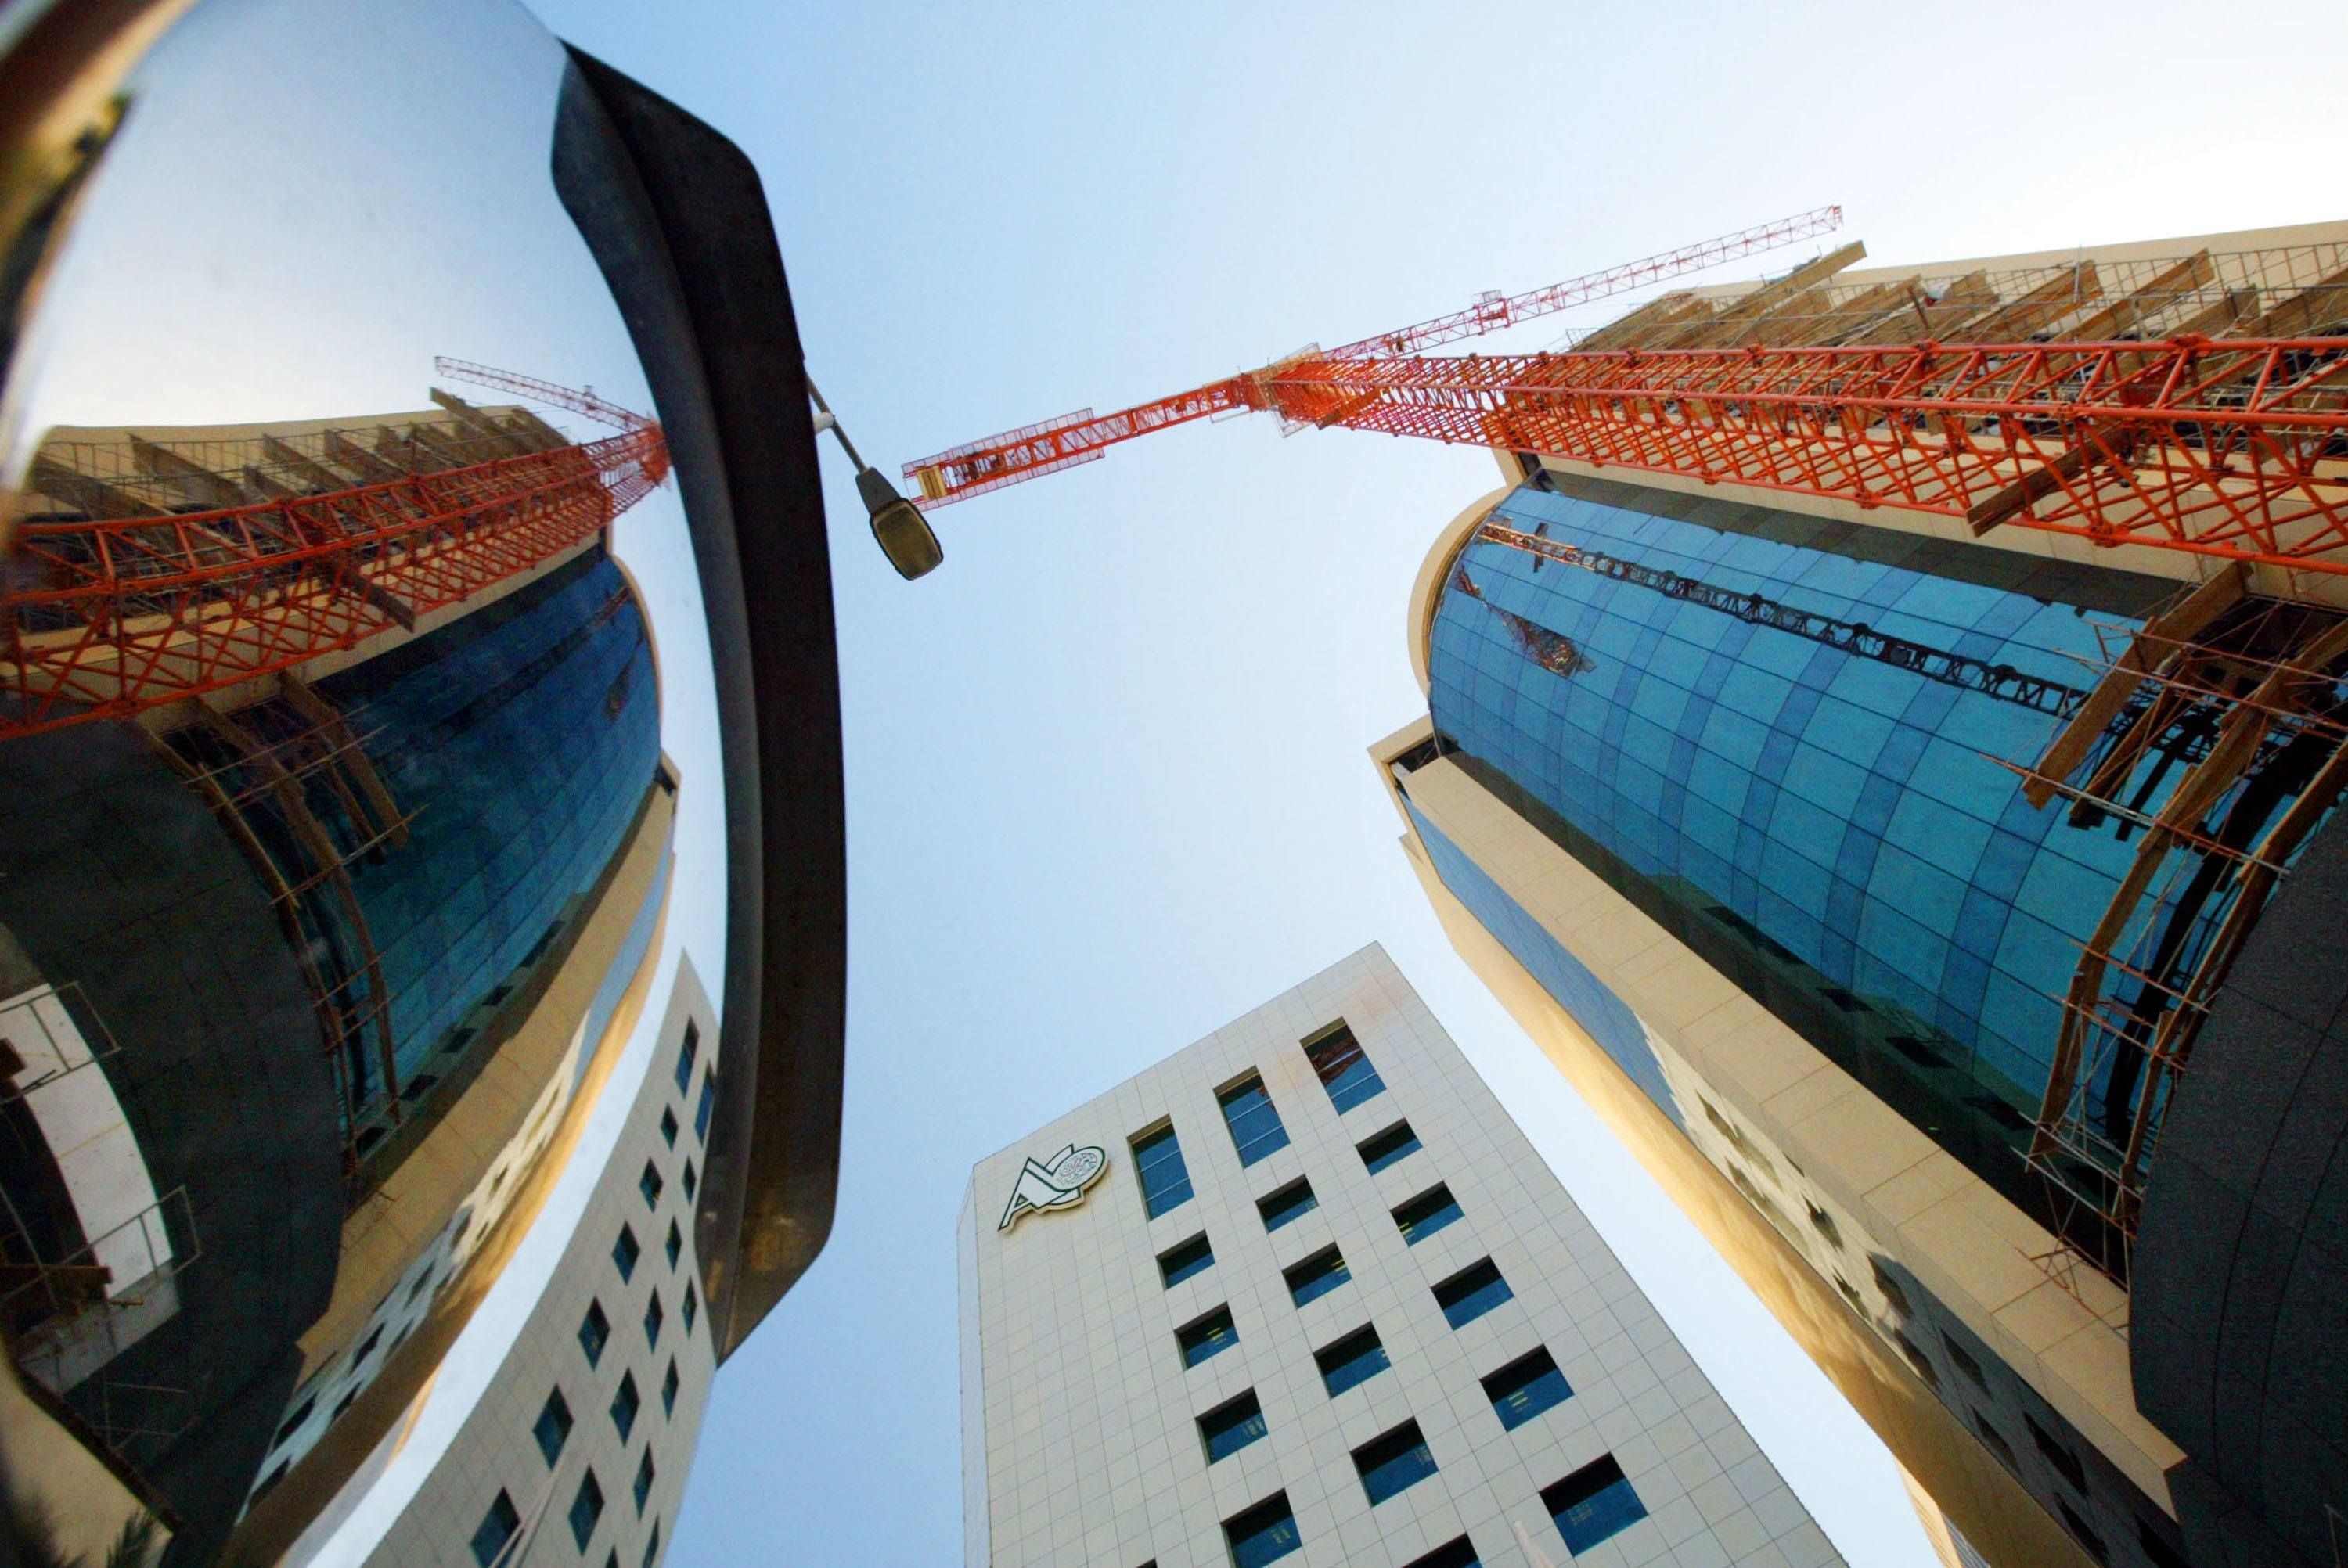 Buildings are under construction to accommodate the influx of business as the banking industry continues to grow in Bahrain